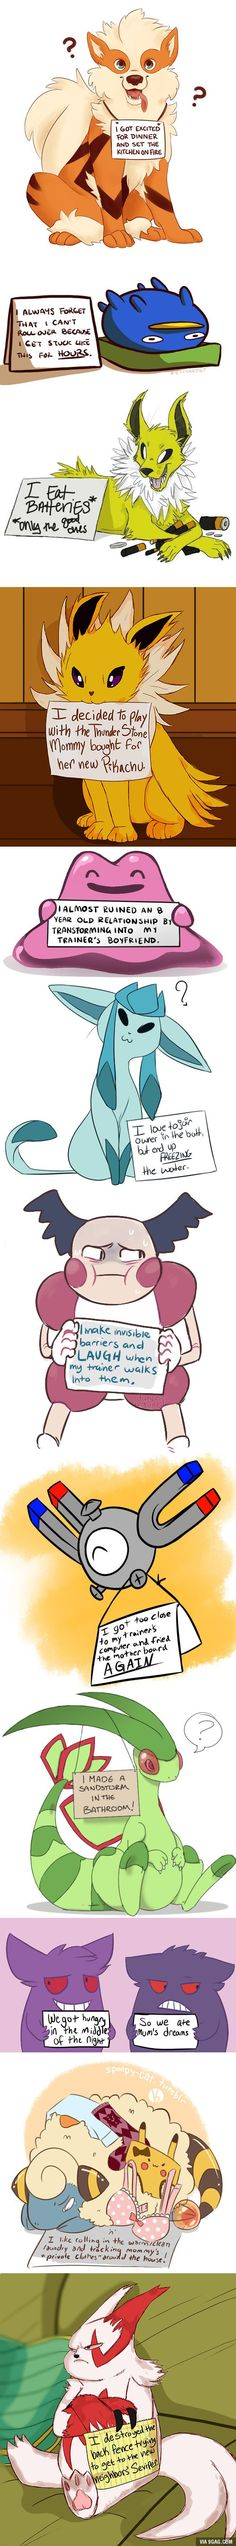 Pokemon have problems too.Their not robots.LOLOLOLOLOLOLOLOLOLOLOLOLOLOLOLOLOLOLOLOLOLOL